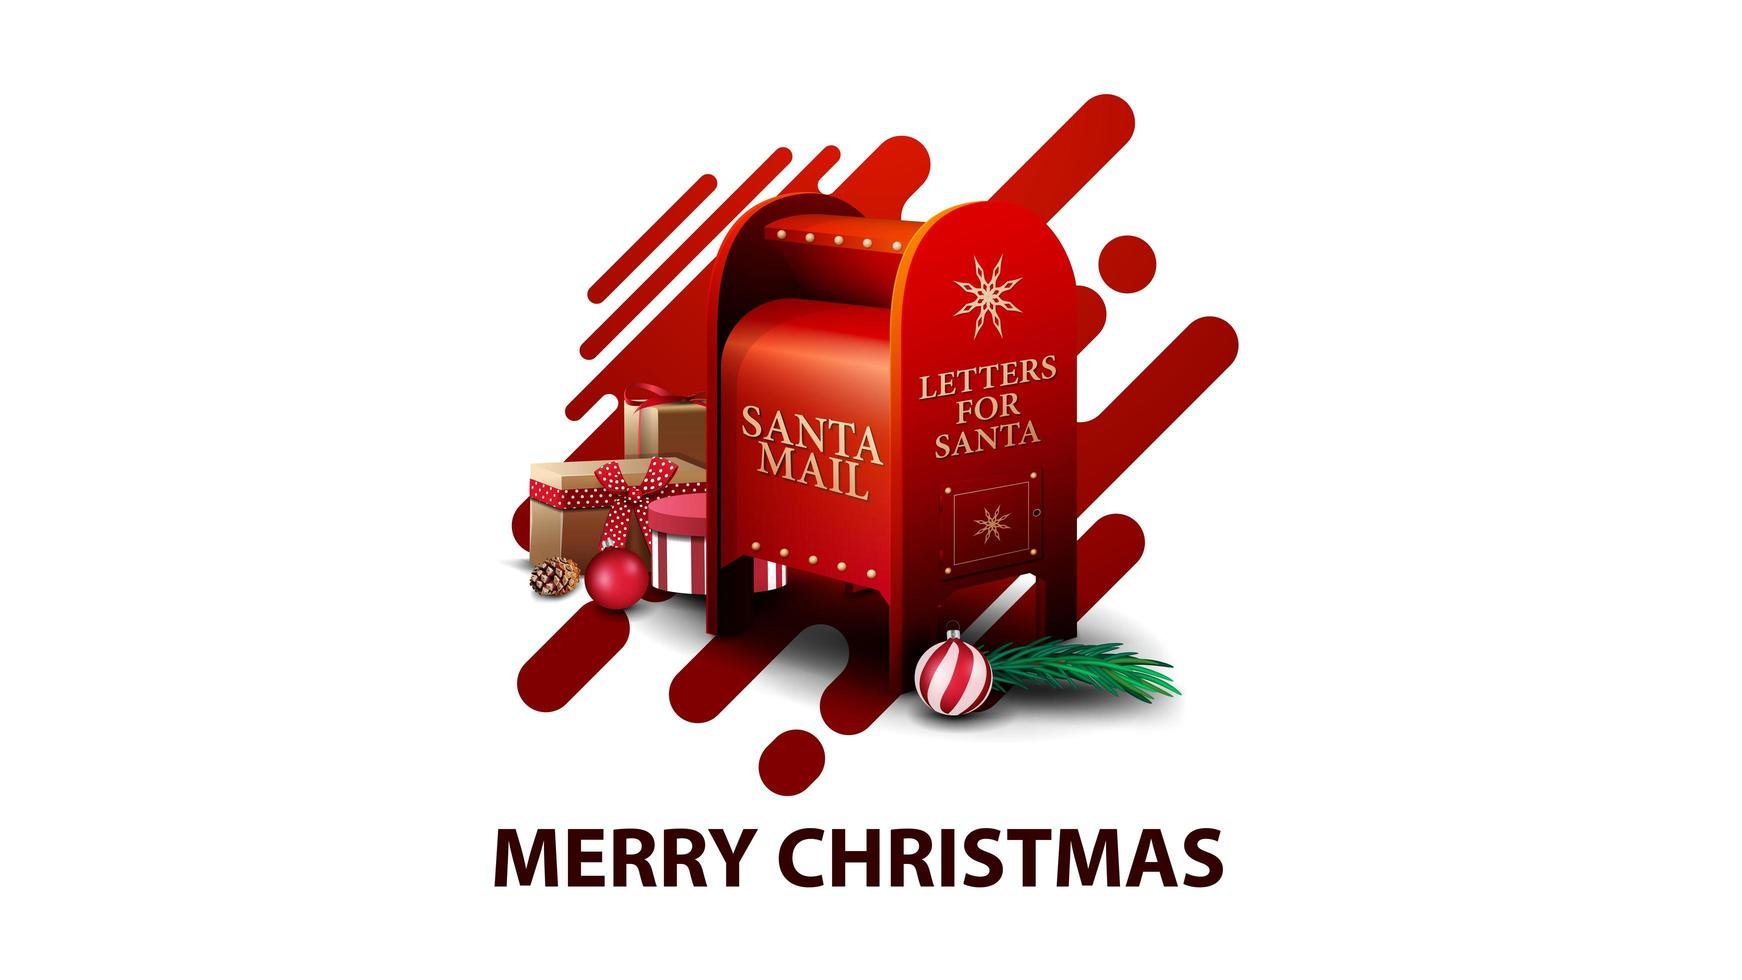 Merry Christmas, white modern postcard with red abstract liquid shapes and Santa letterbox with presents vector